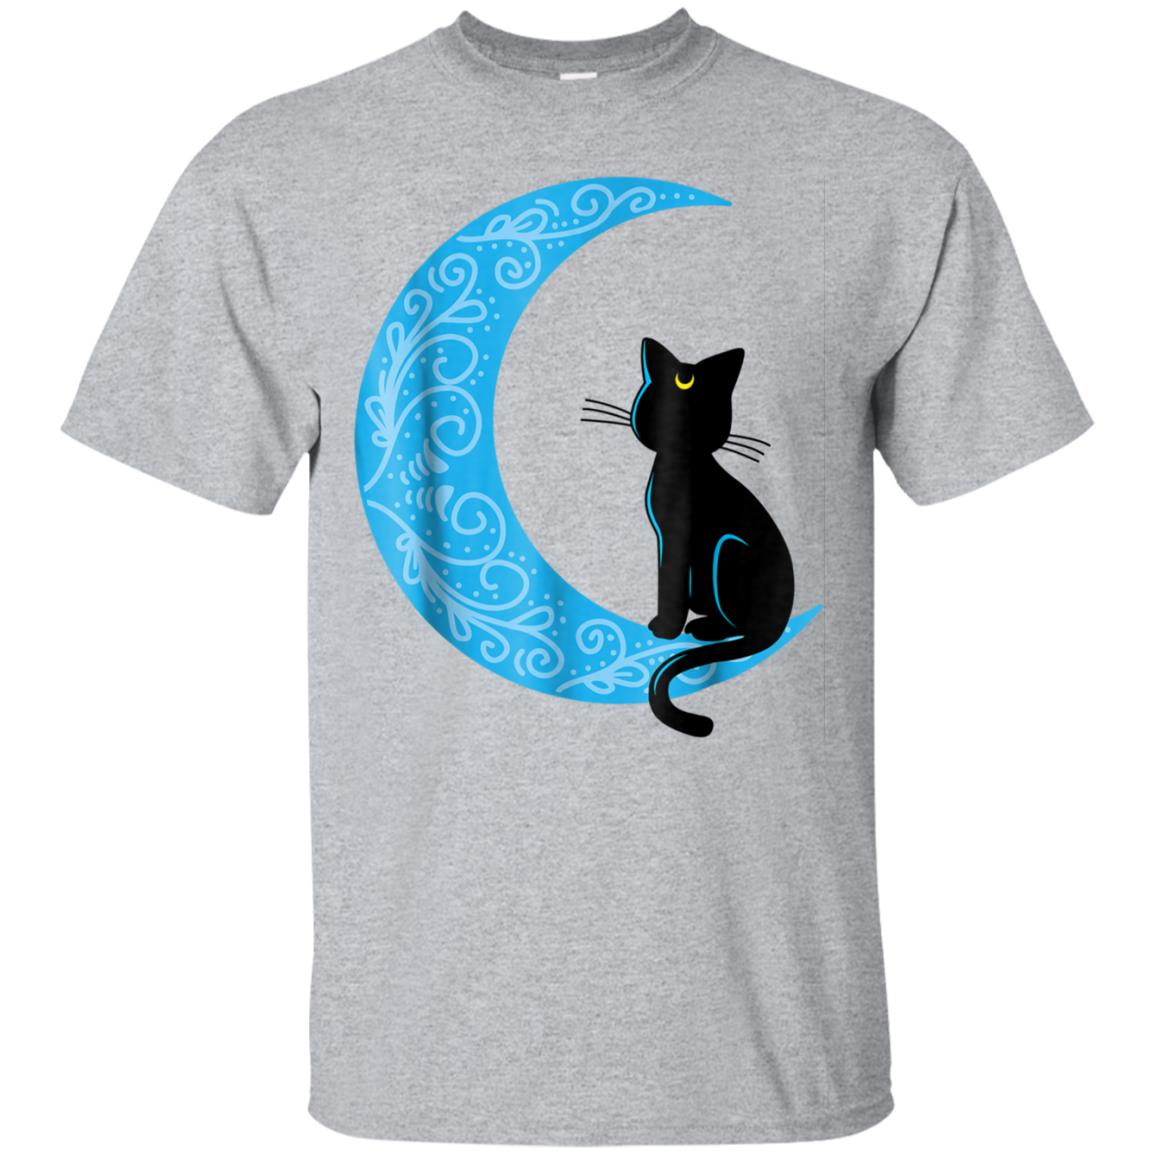 Black Cat Crescent Moon Sailor Mom T-Shirt 99promocode